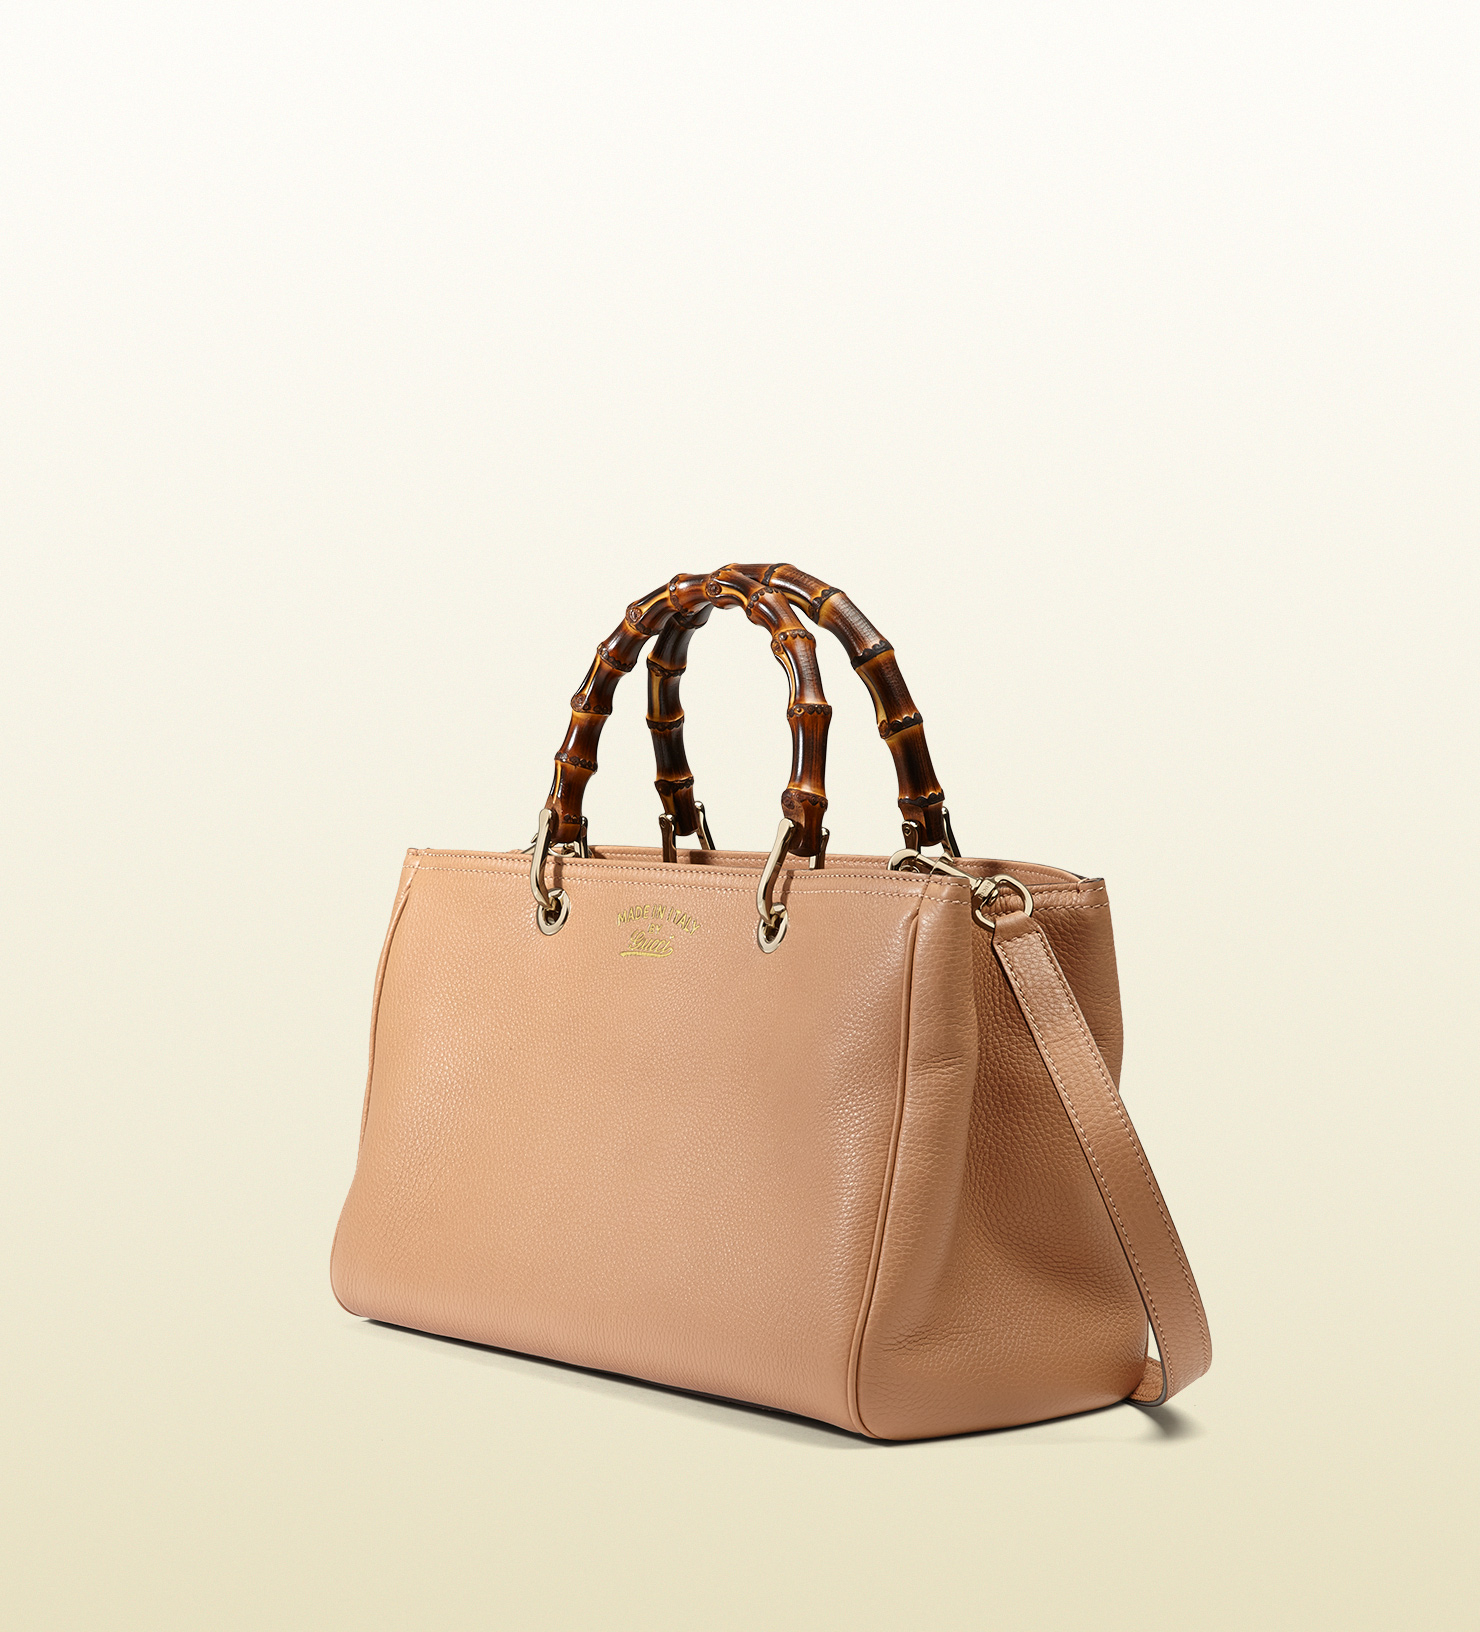 lyst gucci bamboo shopper leather tote in pink. Black Bedroom Furniture Sets. Home Design Ideas